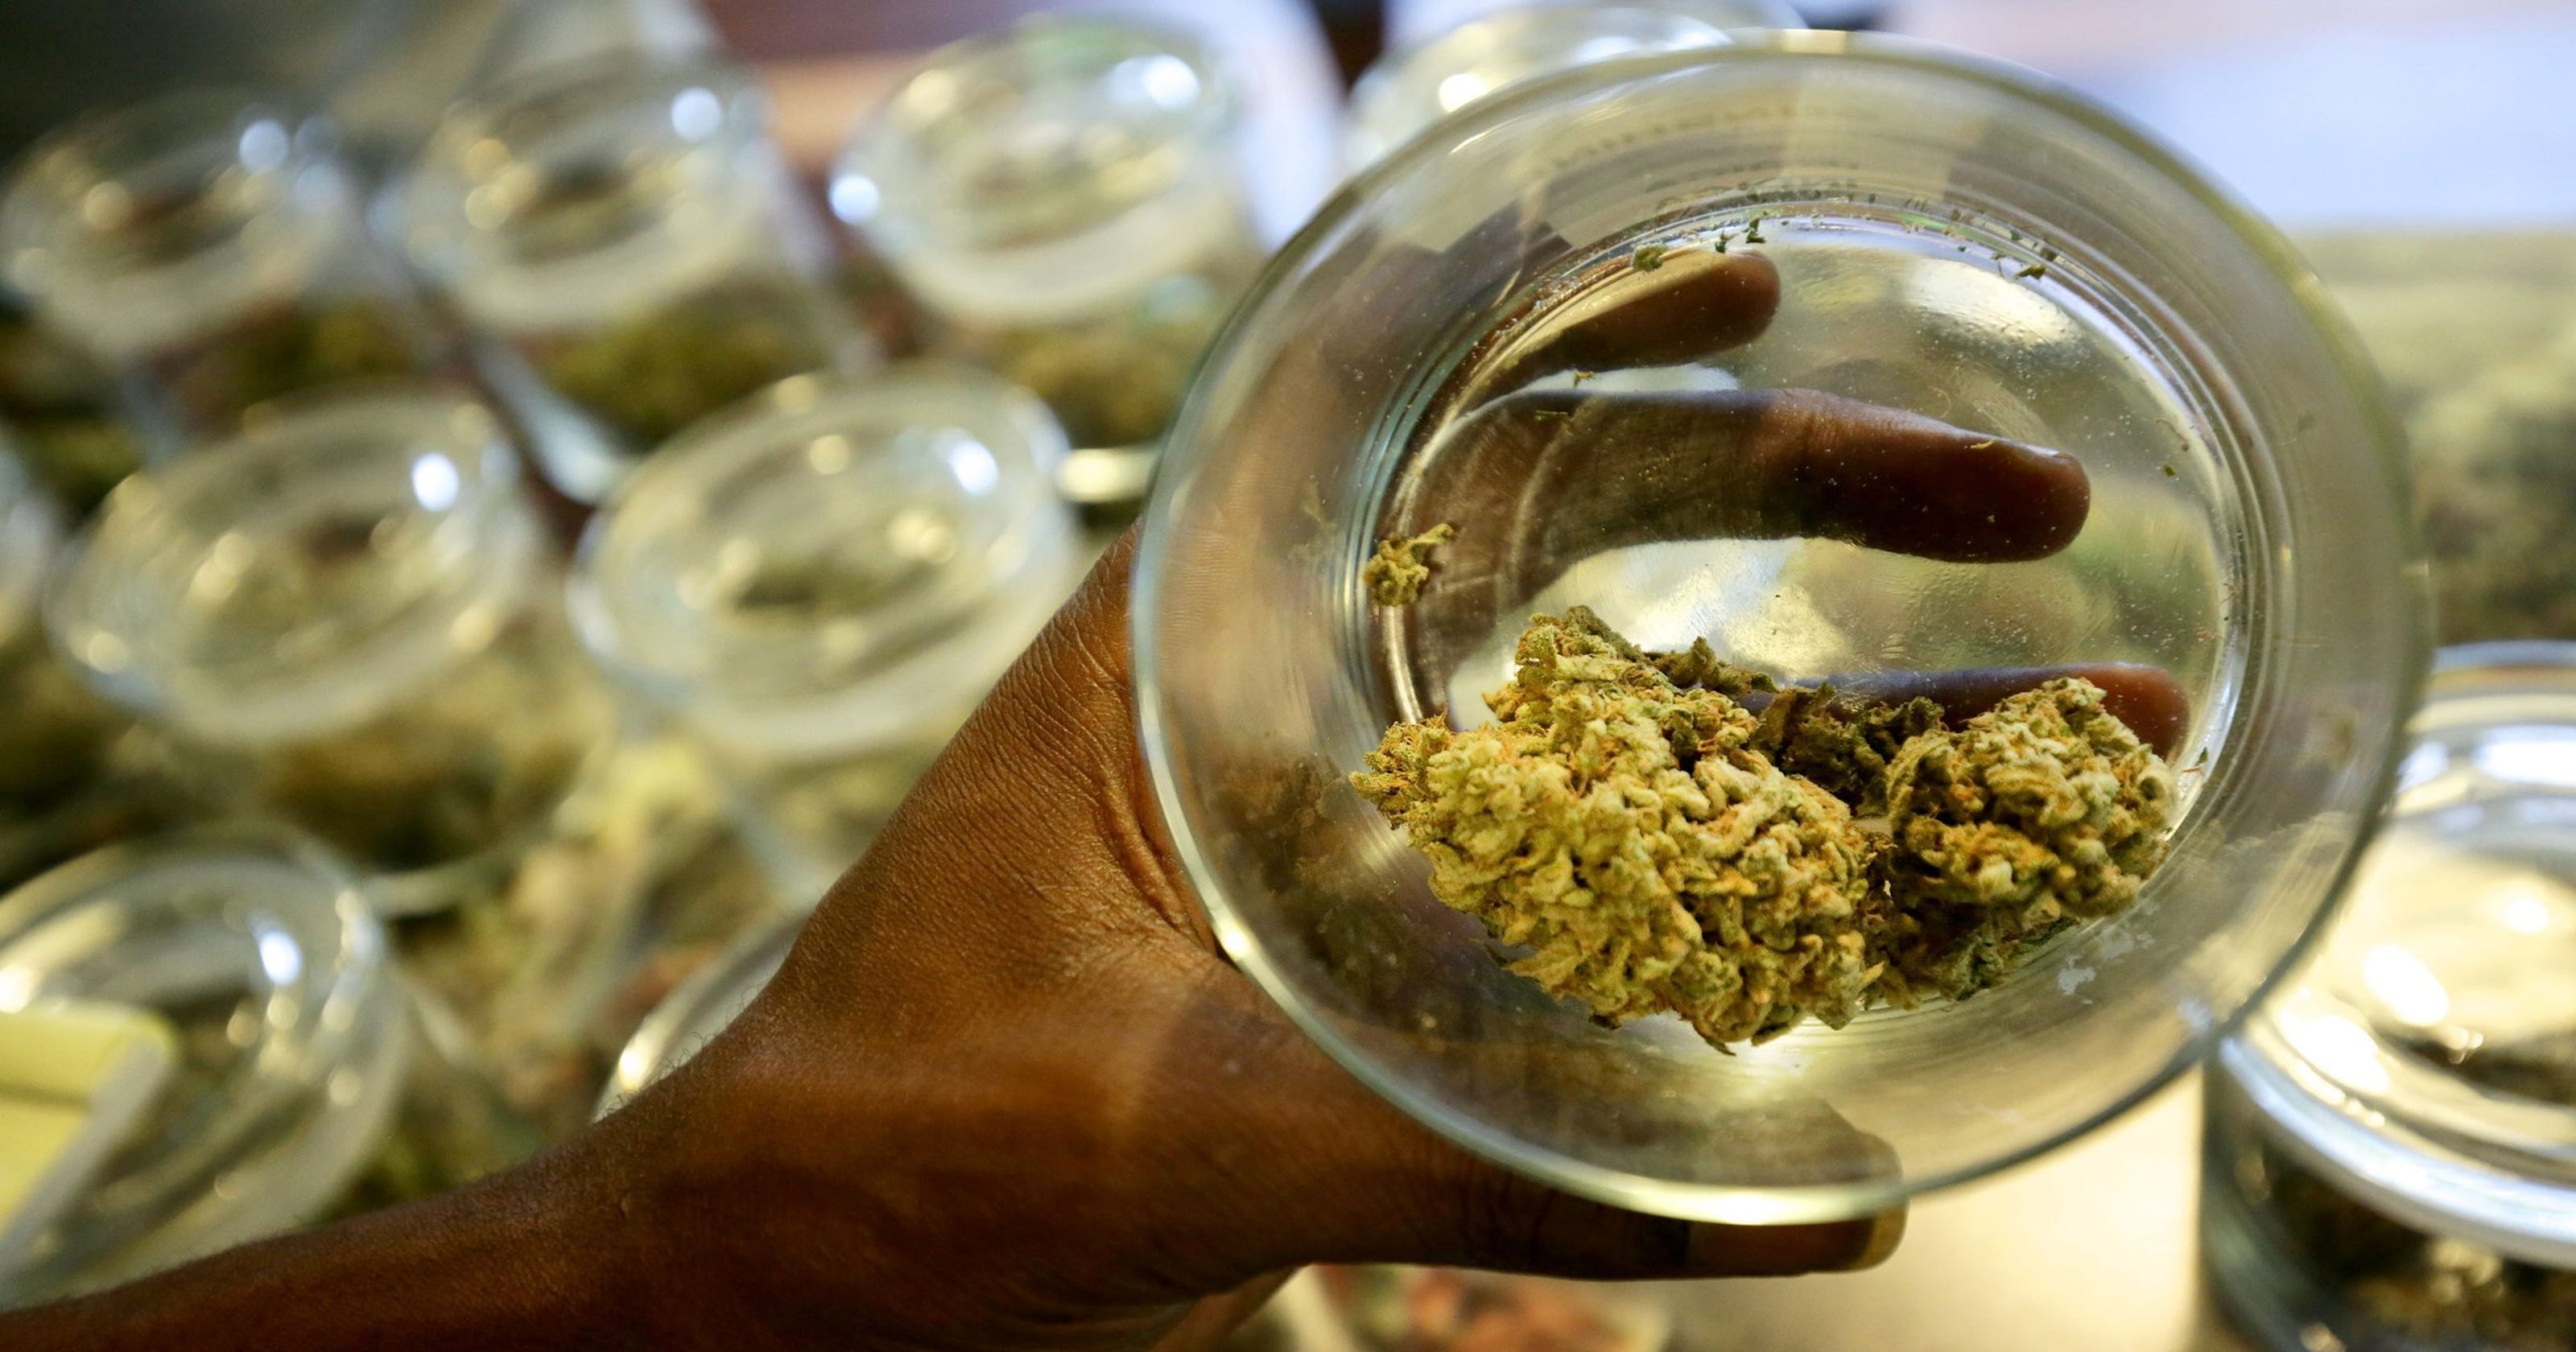 Few Michigan towns are letting pot businesses in